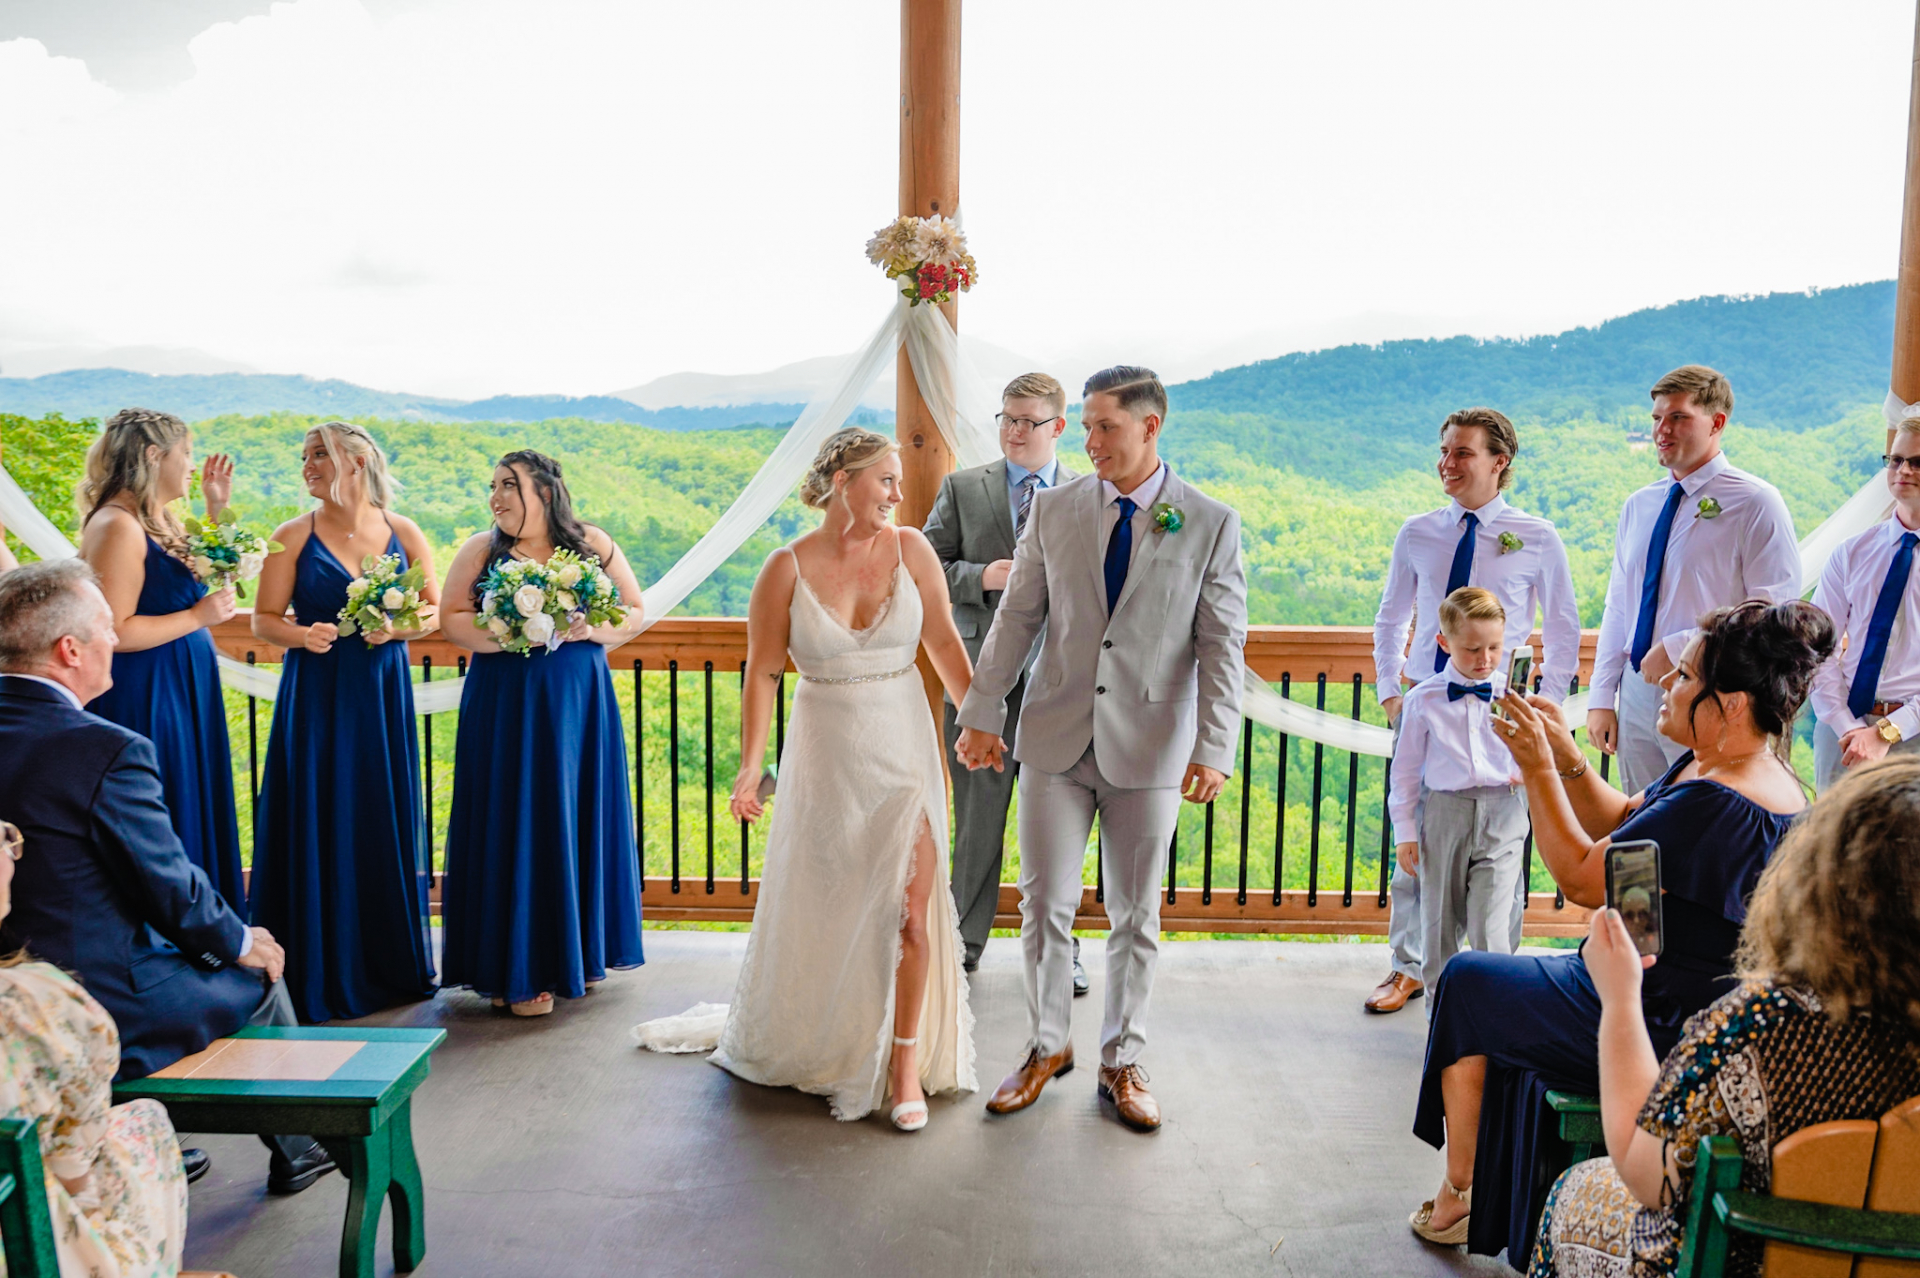 Timber Top Cabins, Pigeon Forge, TN Elopement Picture | The happy newlyweds look at each other and hold hands